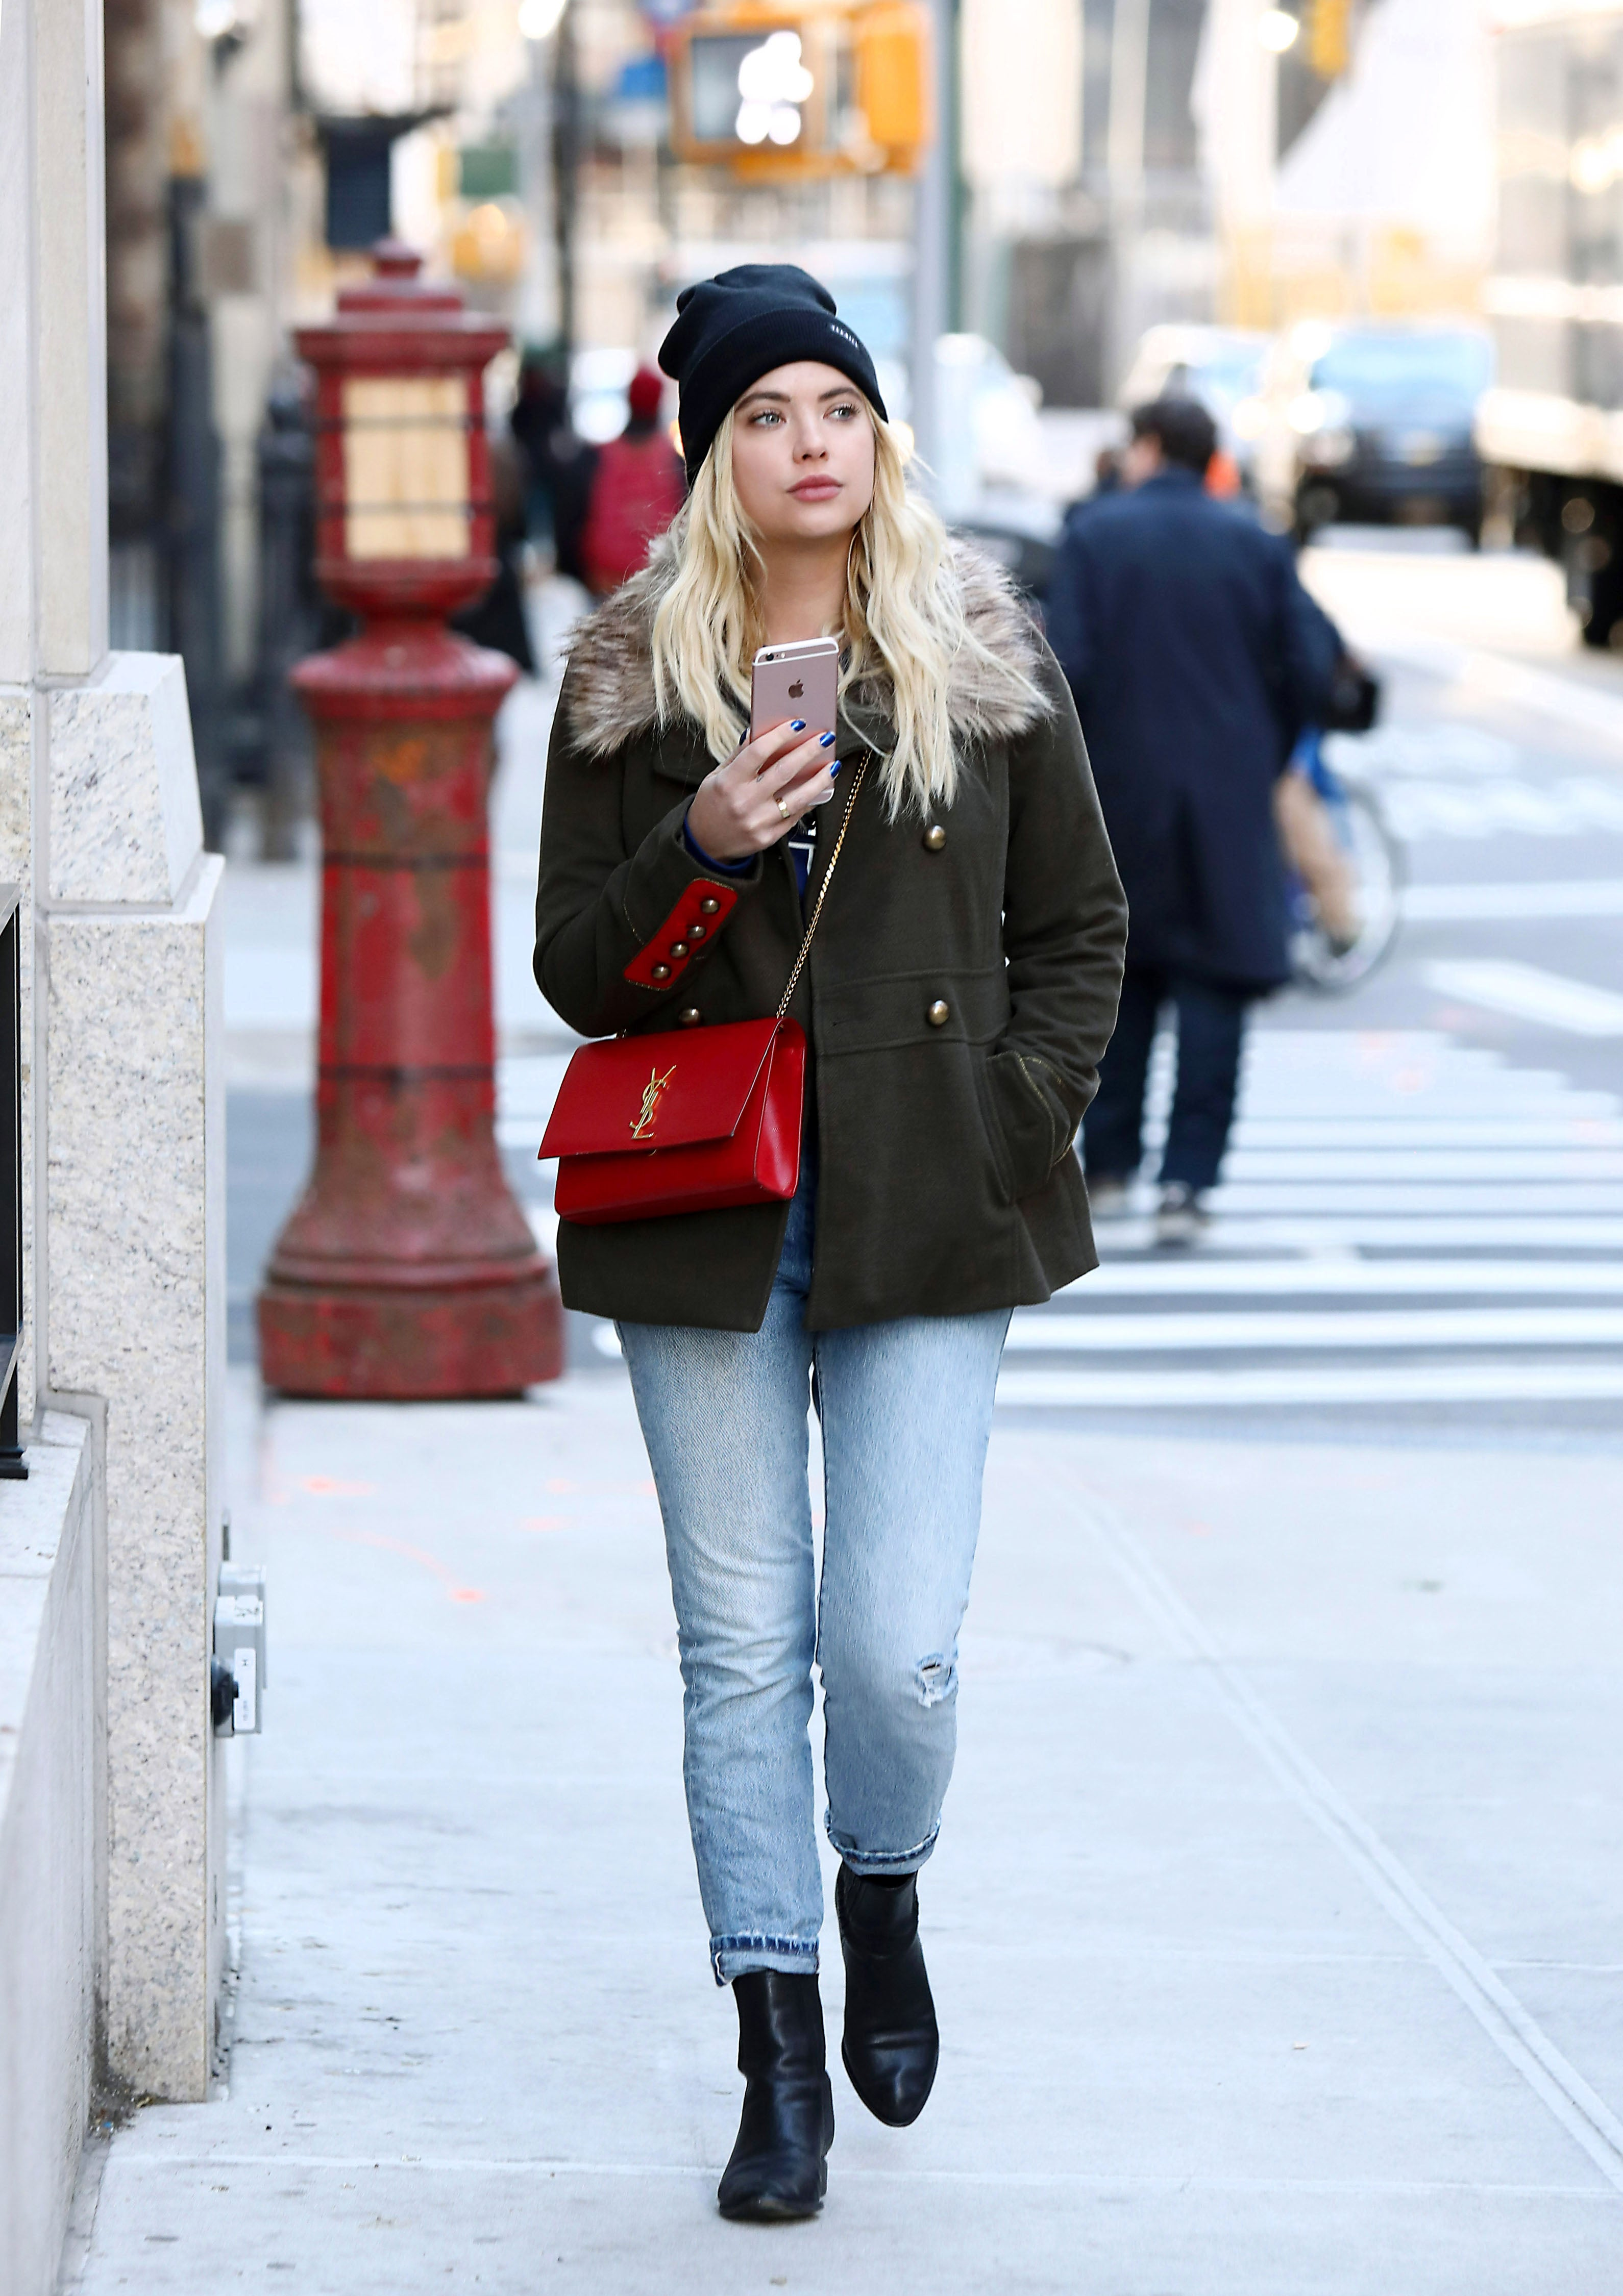 Ashley Benson in NYC